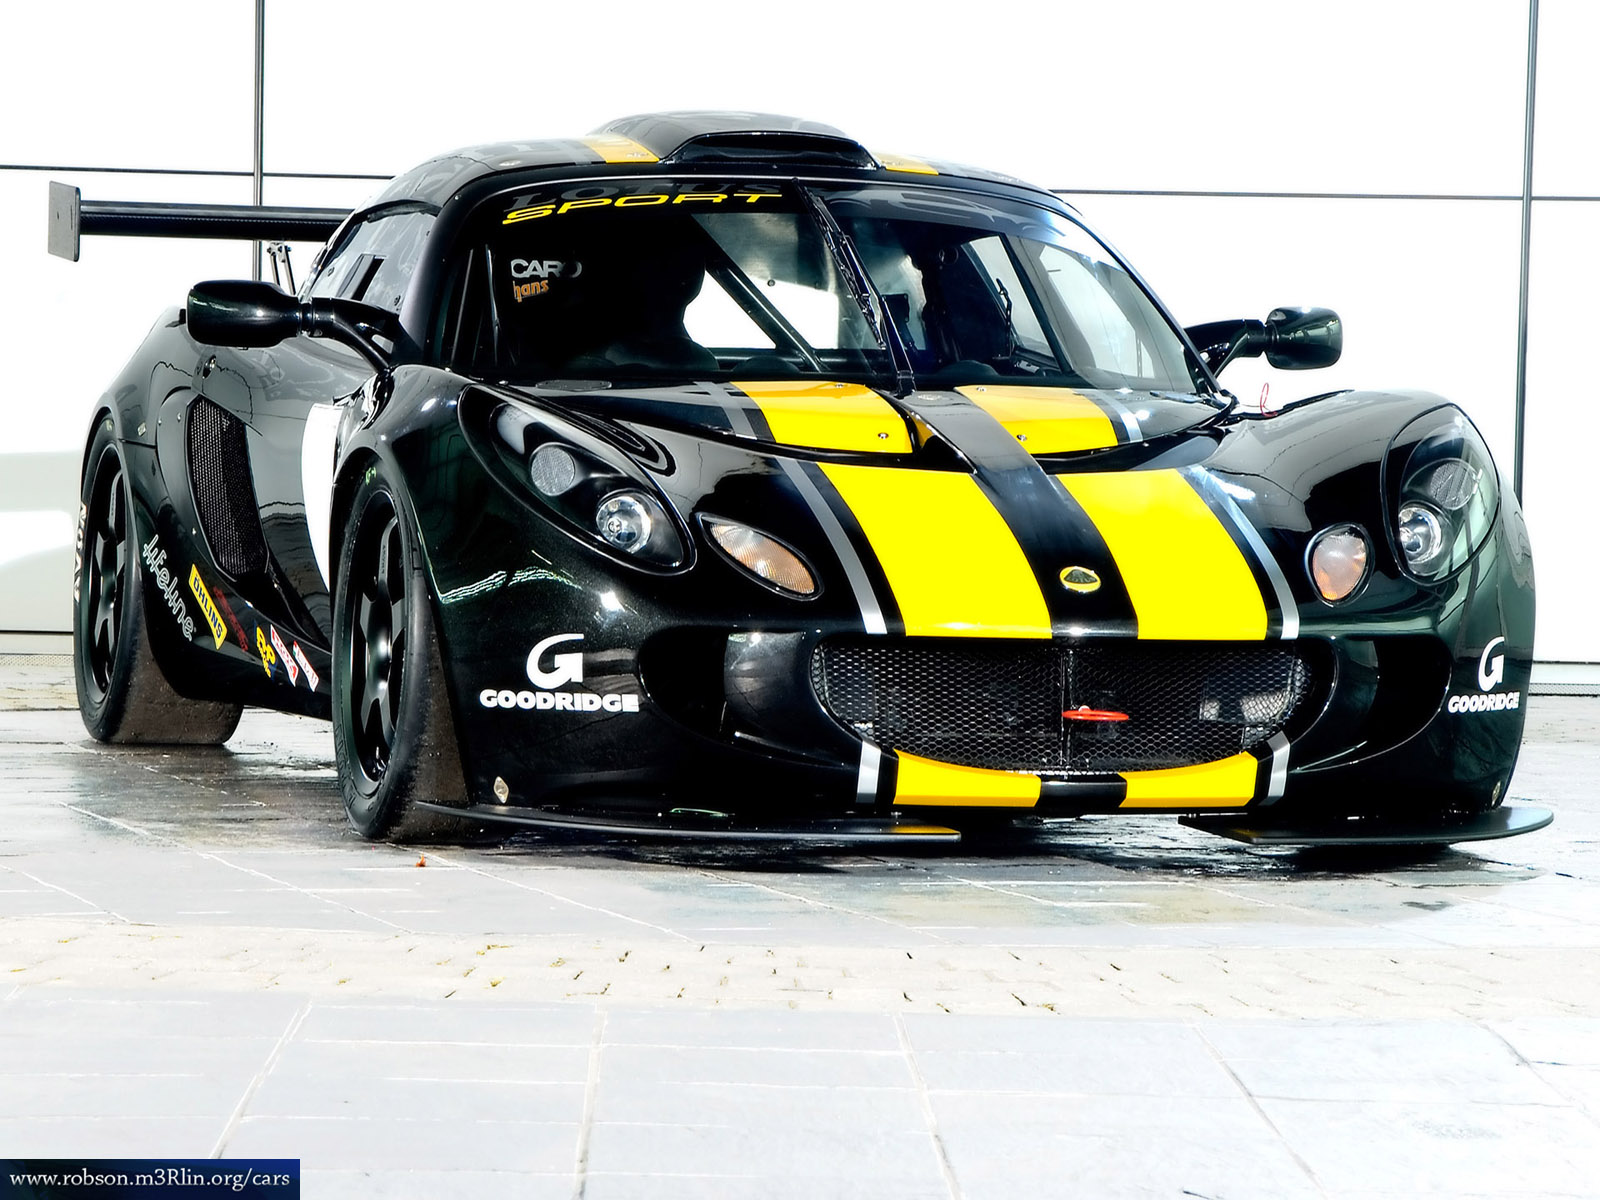 lotus car images |Cars Wallpapers And Pictures car images,car pics,carPicture